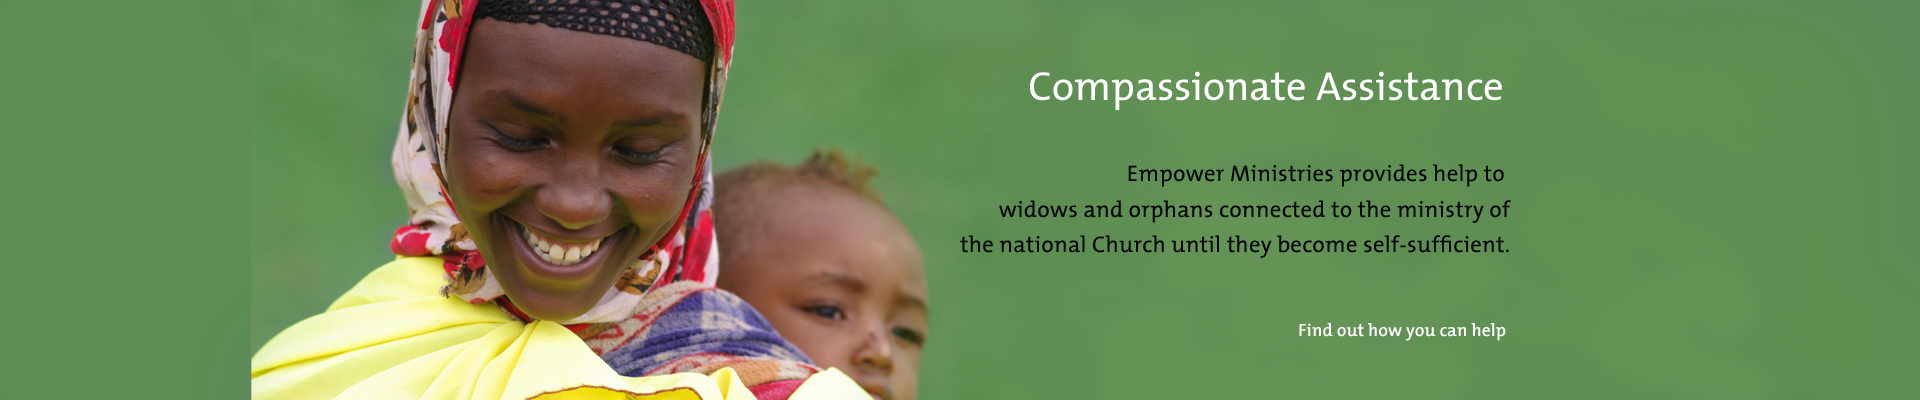 orphans widows aid national church